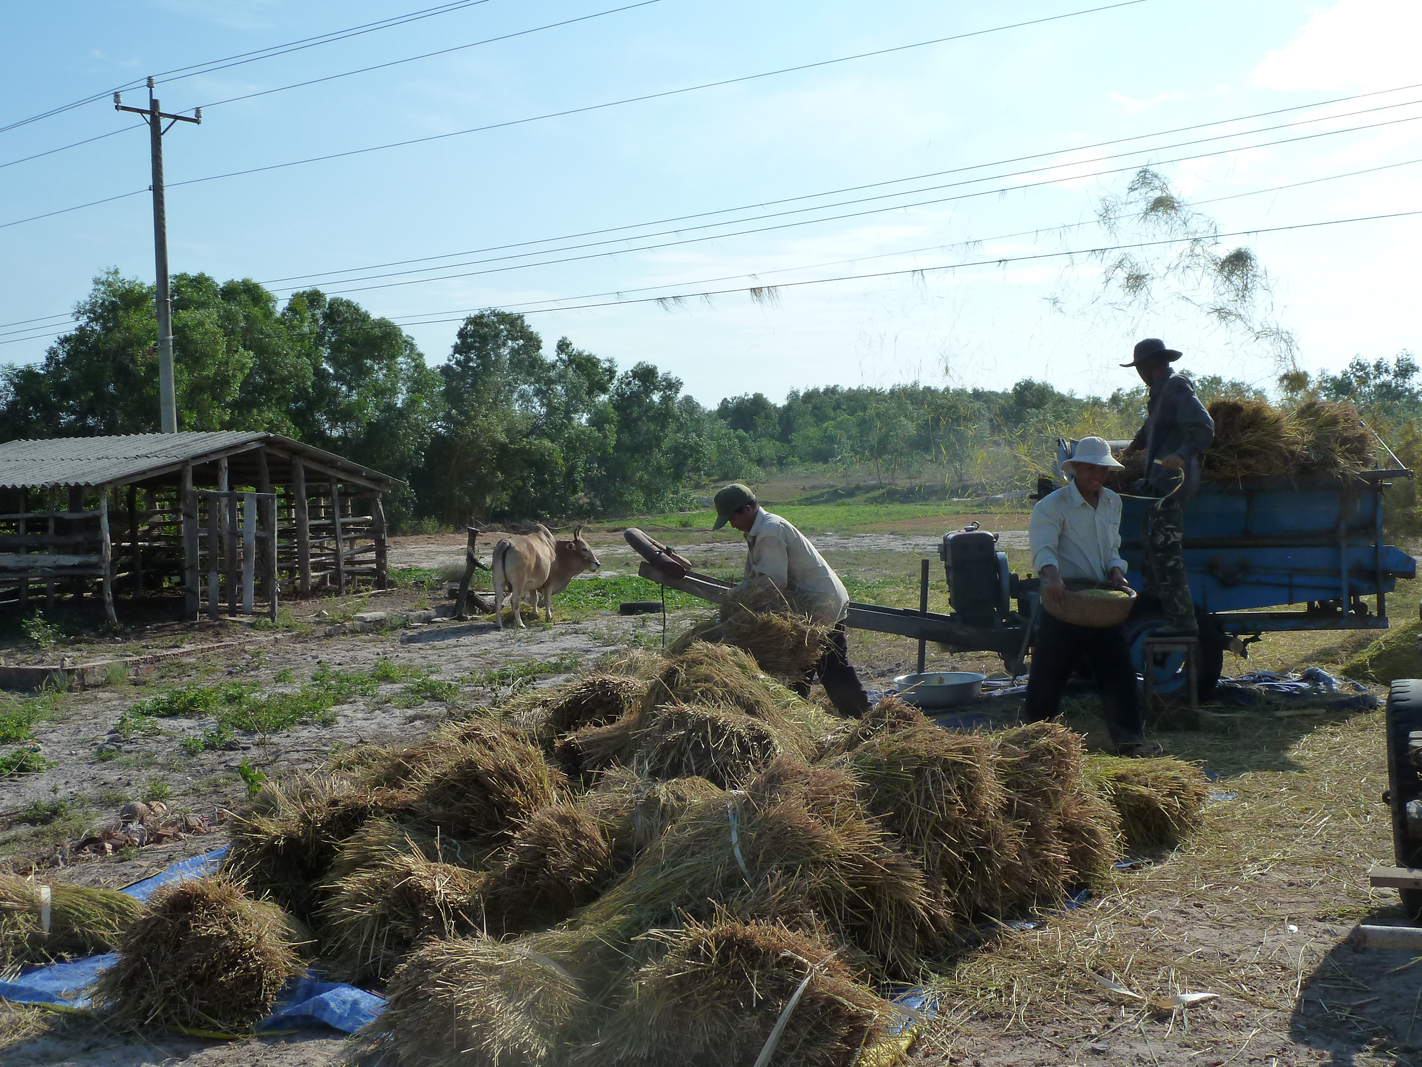 Farmers De-husking Rice in Vietnam